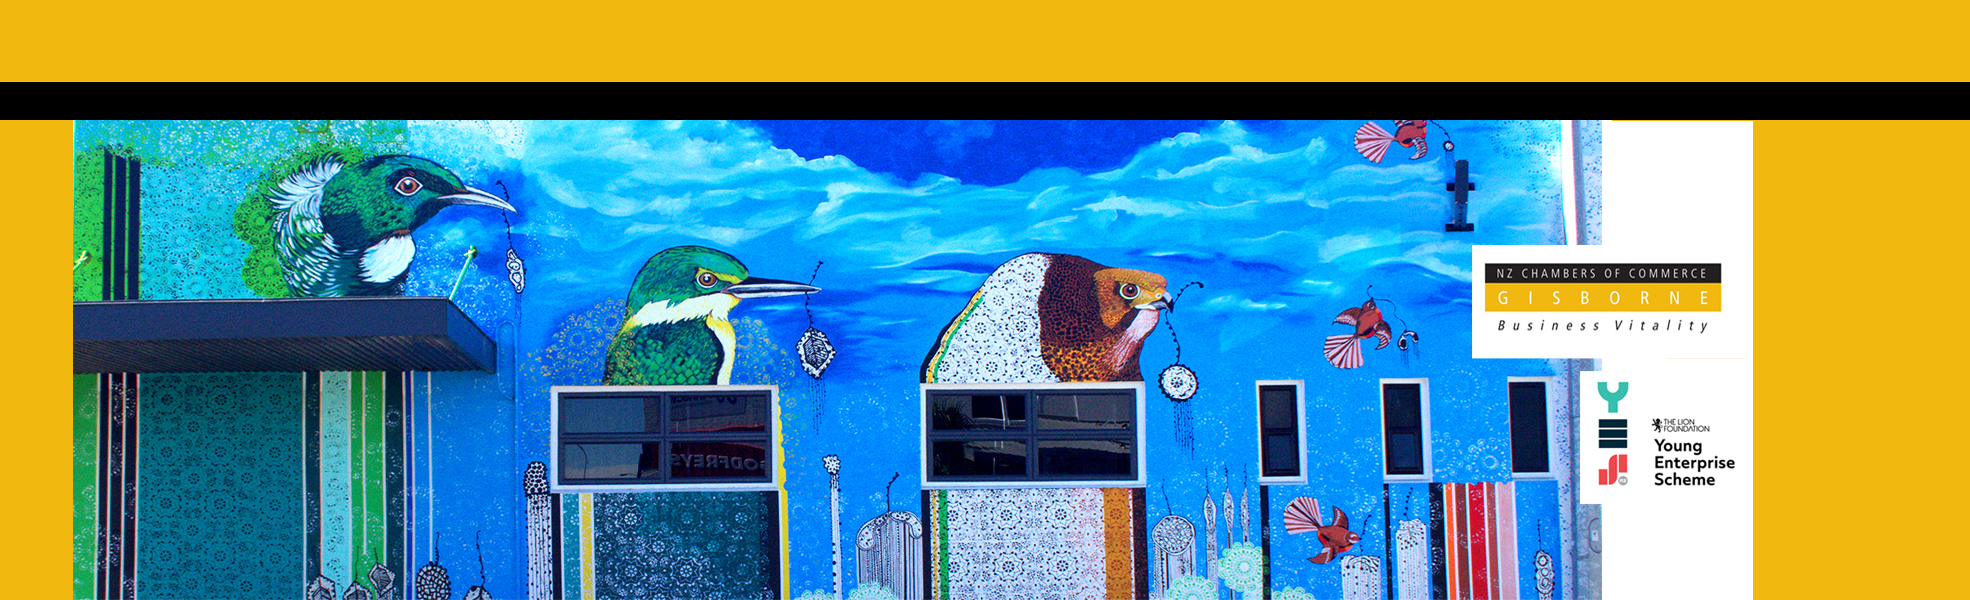 Chamber of Commerce WALL 1970x600 birds YES web2